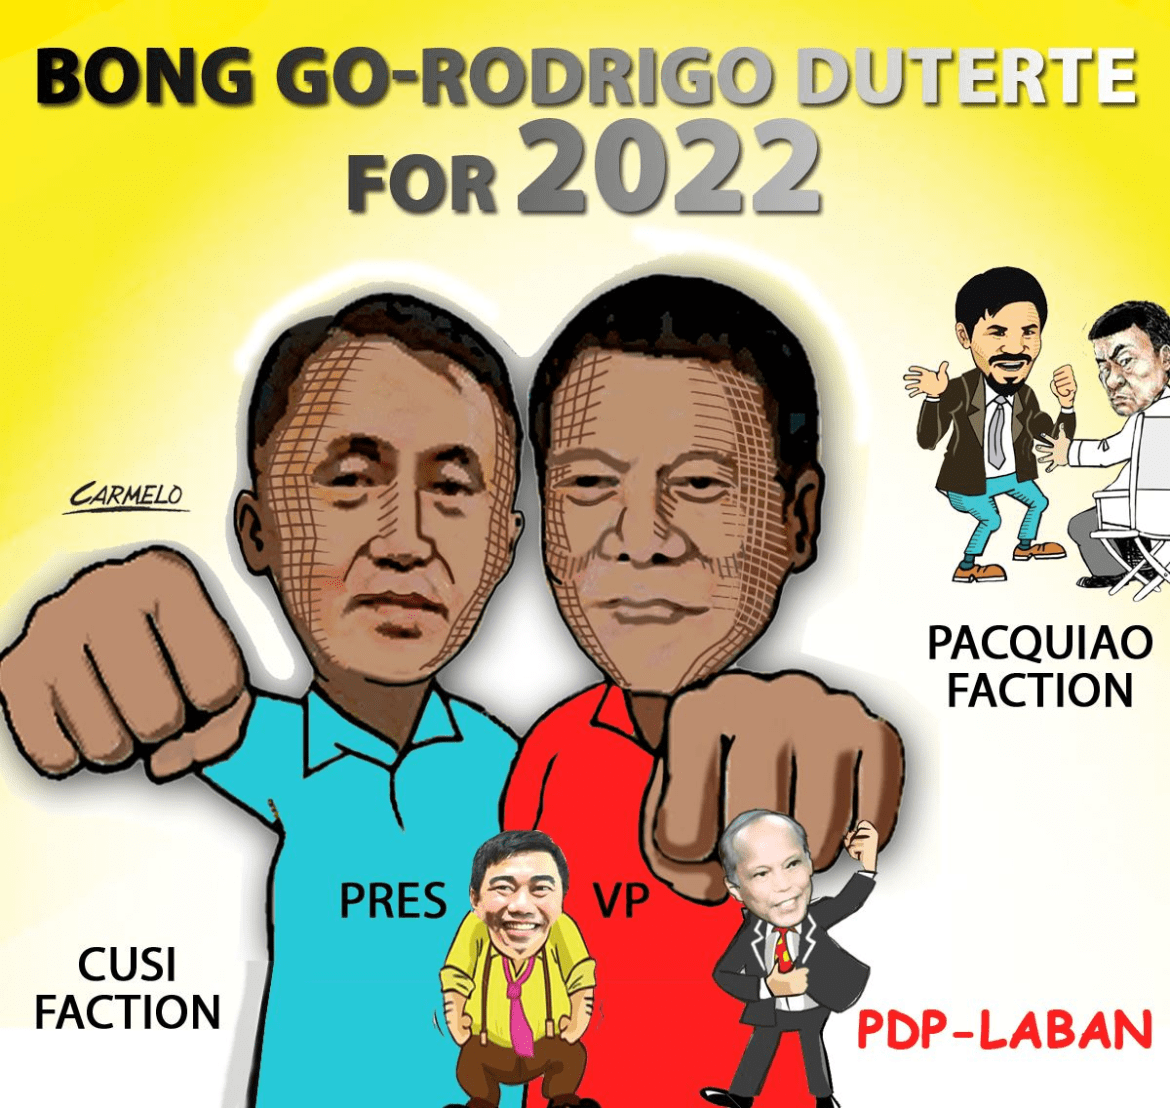 Go appeals to PDP-Laban party mates to respect his decision decliningnomination to run for President